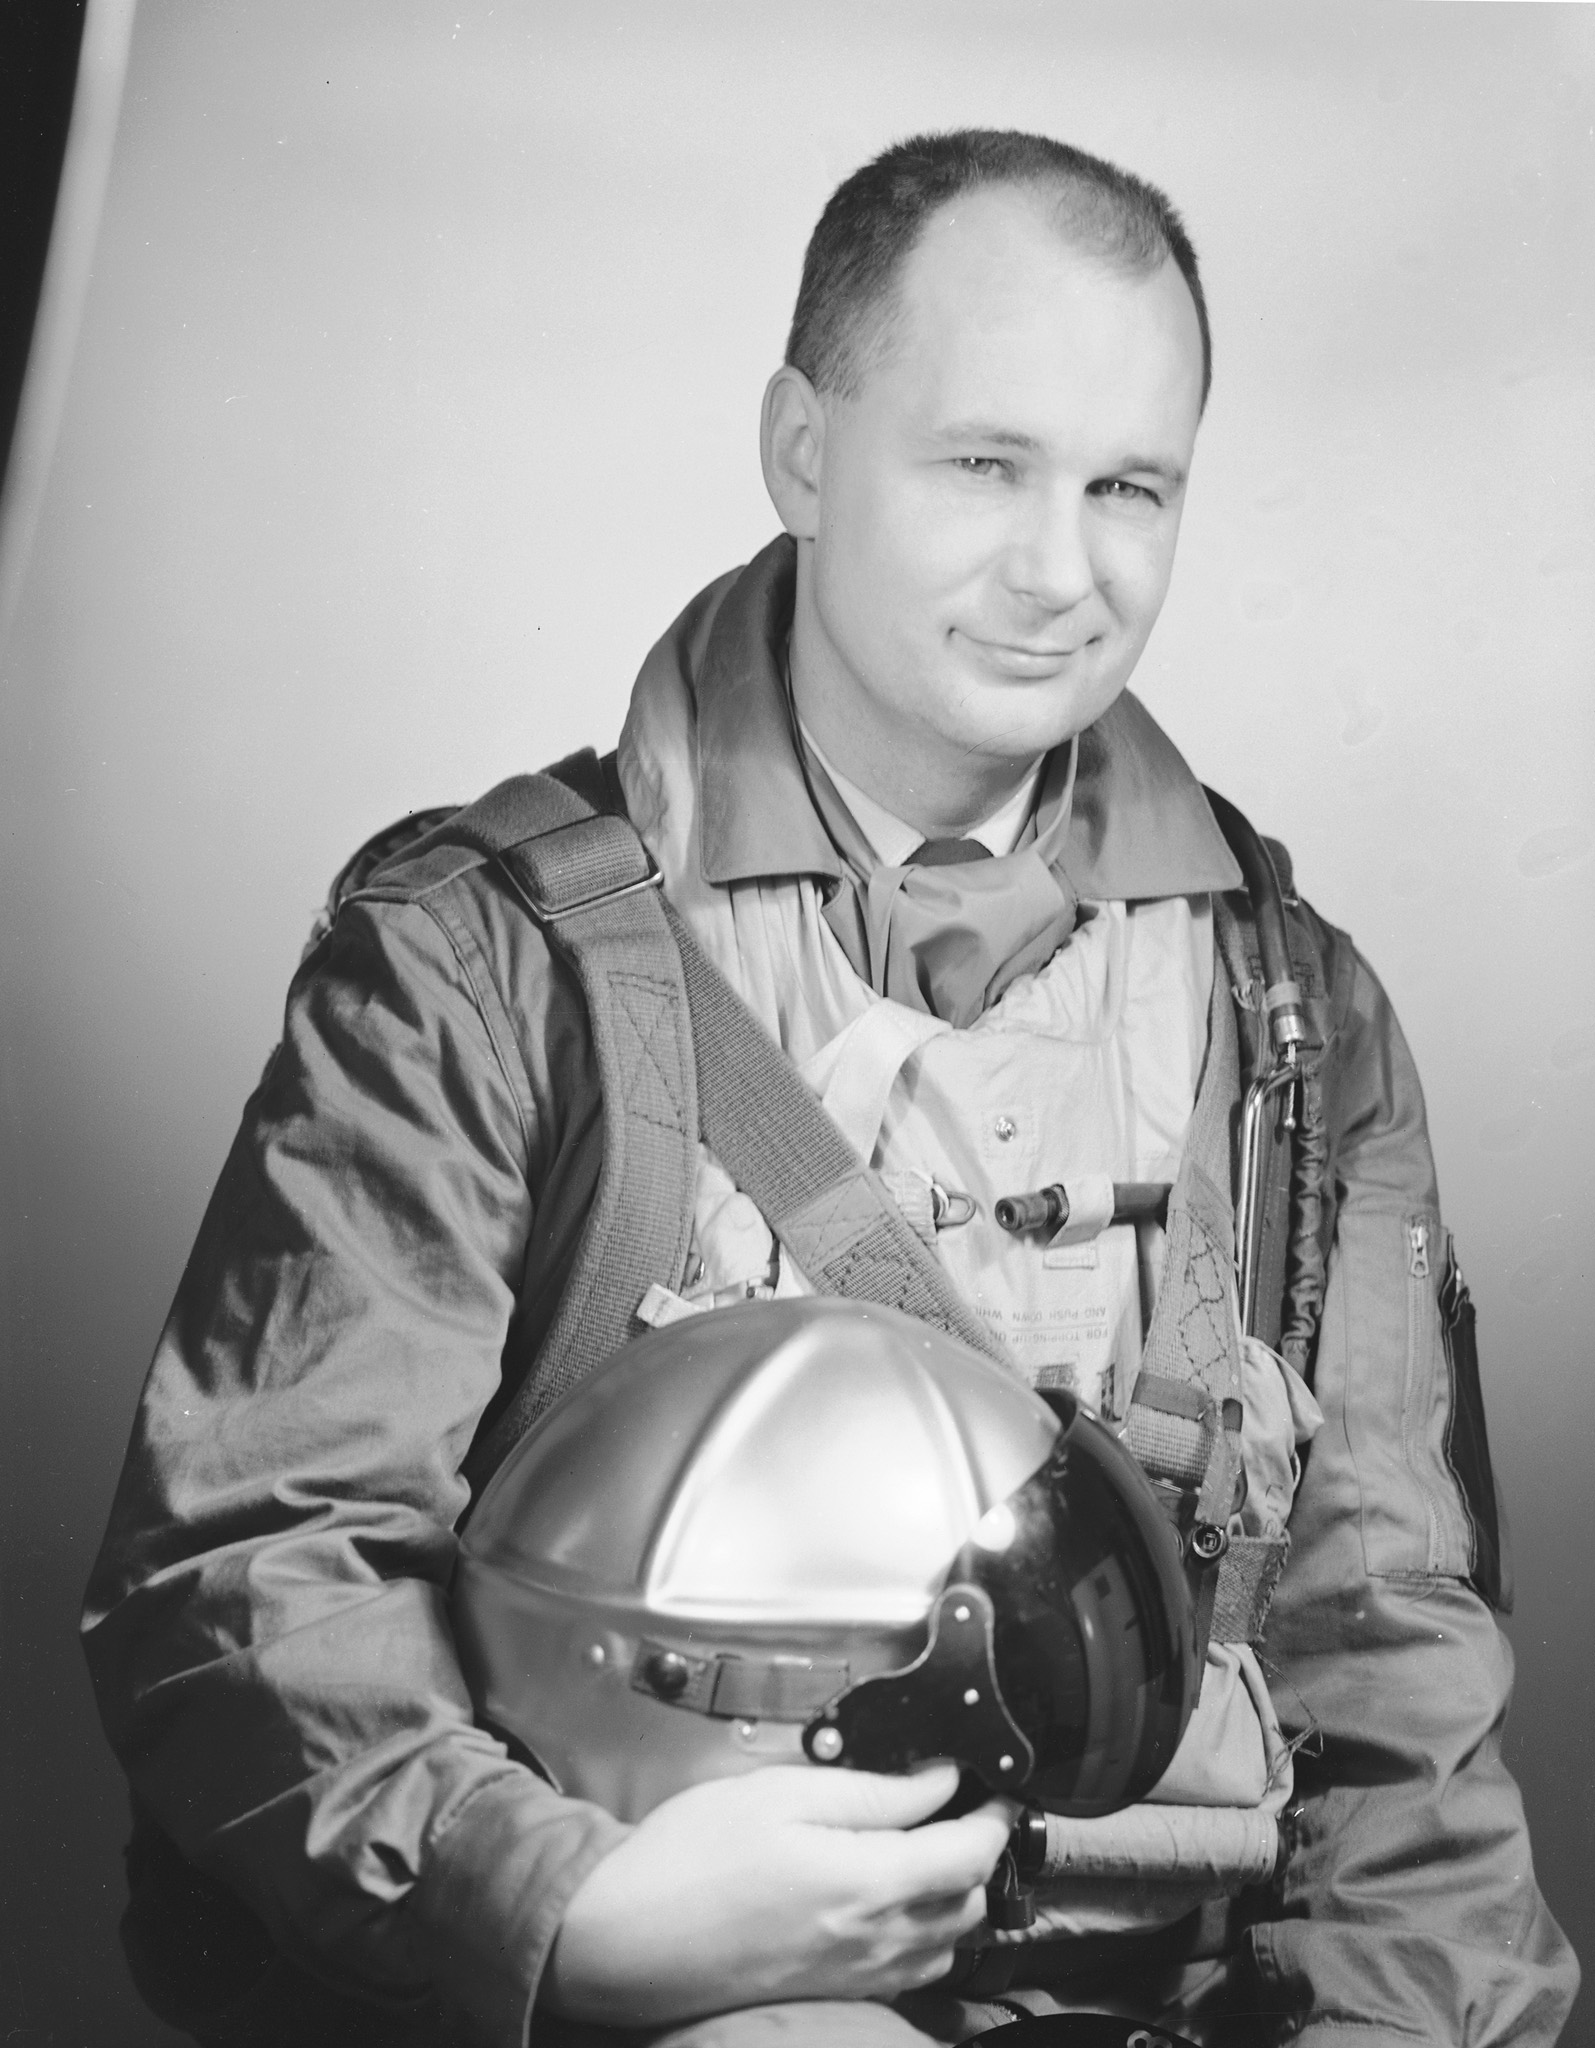 Le commandant d'aviation Fern G. Villeneuve, chef de l'équipe de voltige les Golden Hawks, en 1958. PHOTO : Archives du ministère de la Défense nationale, PL 64137